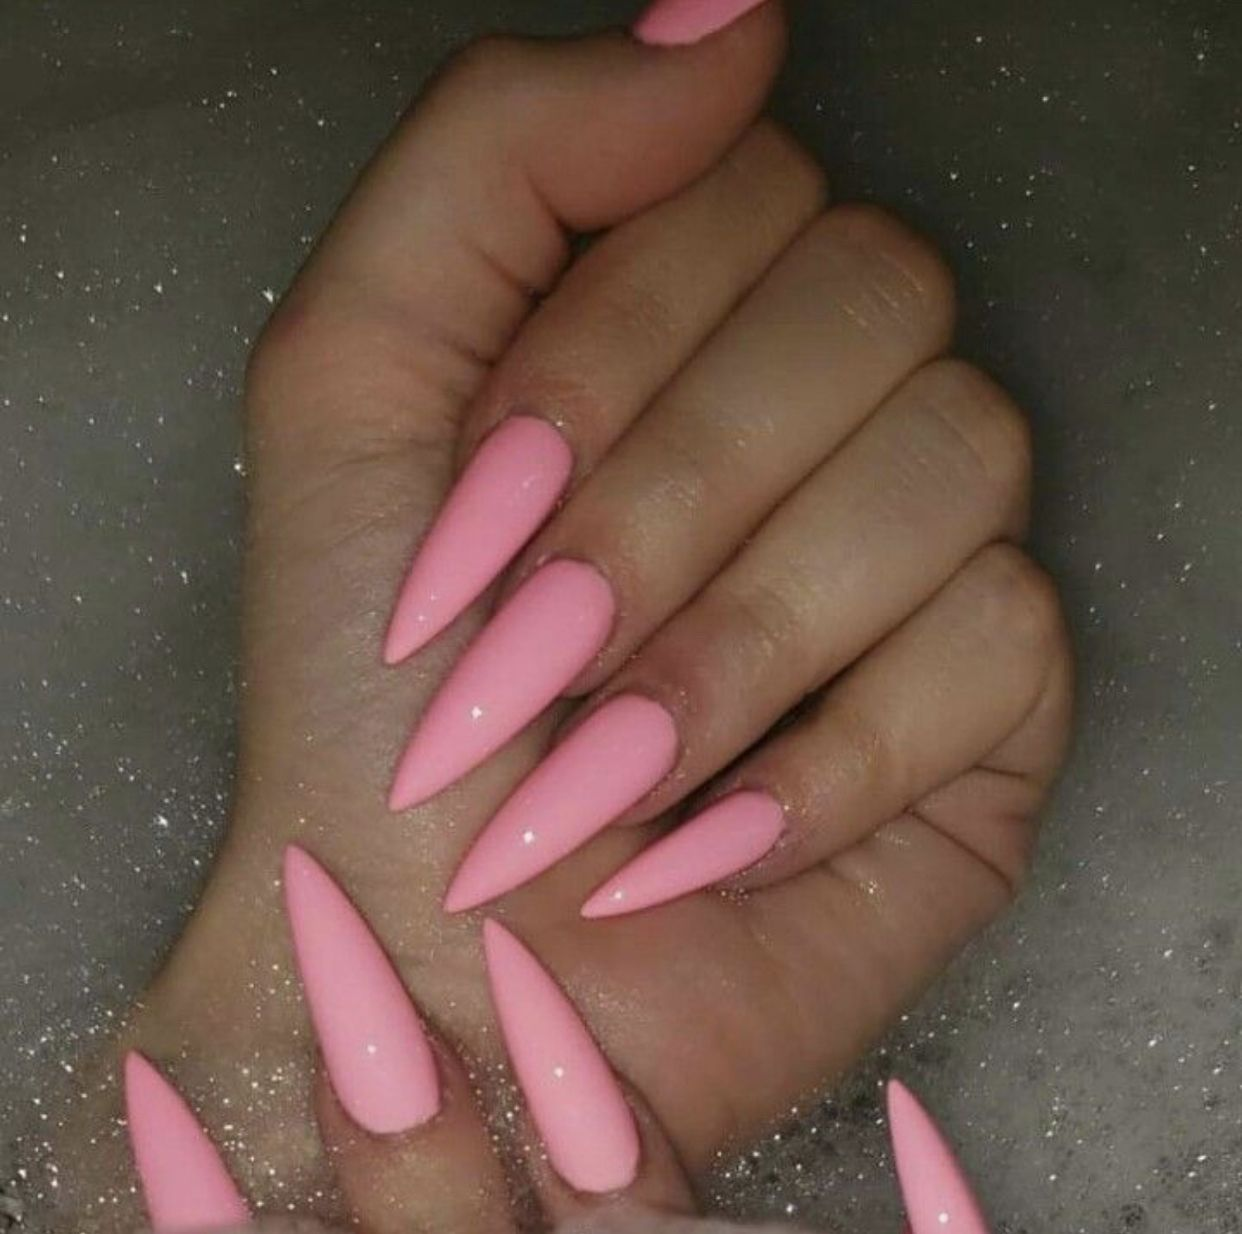 Pin By Versicapeter On Nails Pink Stiletto Nails Stiletto Nails Designs Pink Acrylic Nails